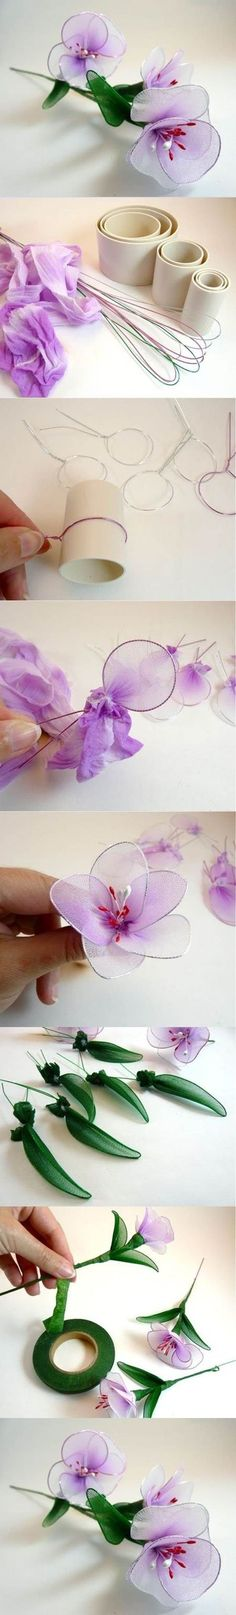 DIY Beautiful Nylon Flowers: